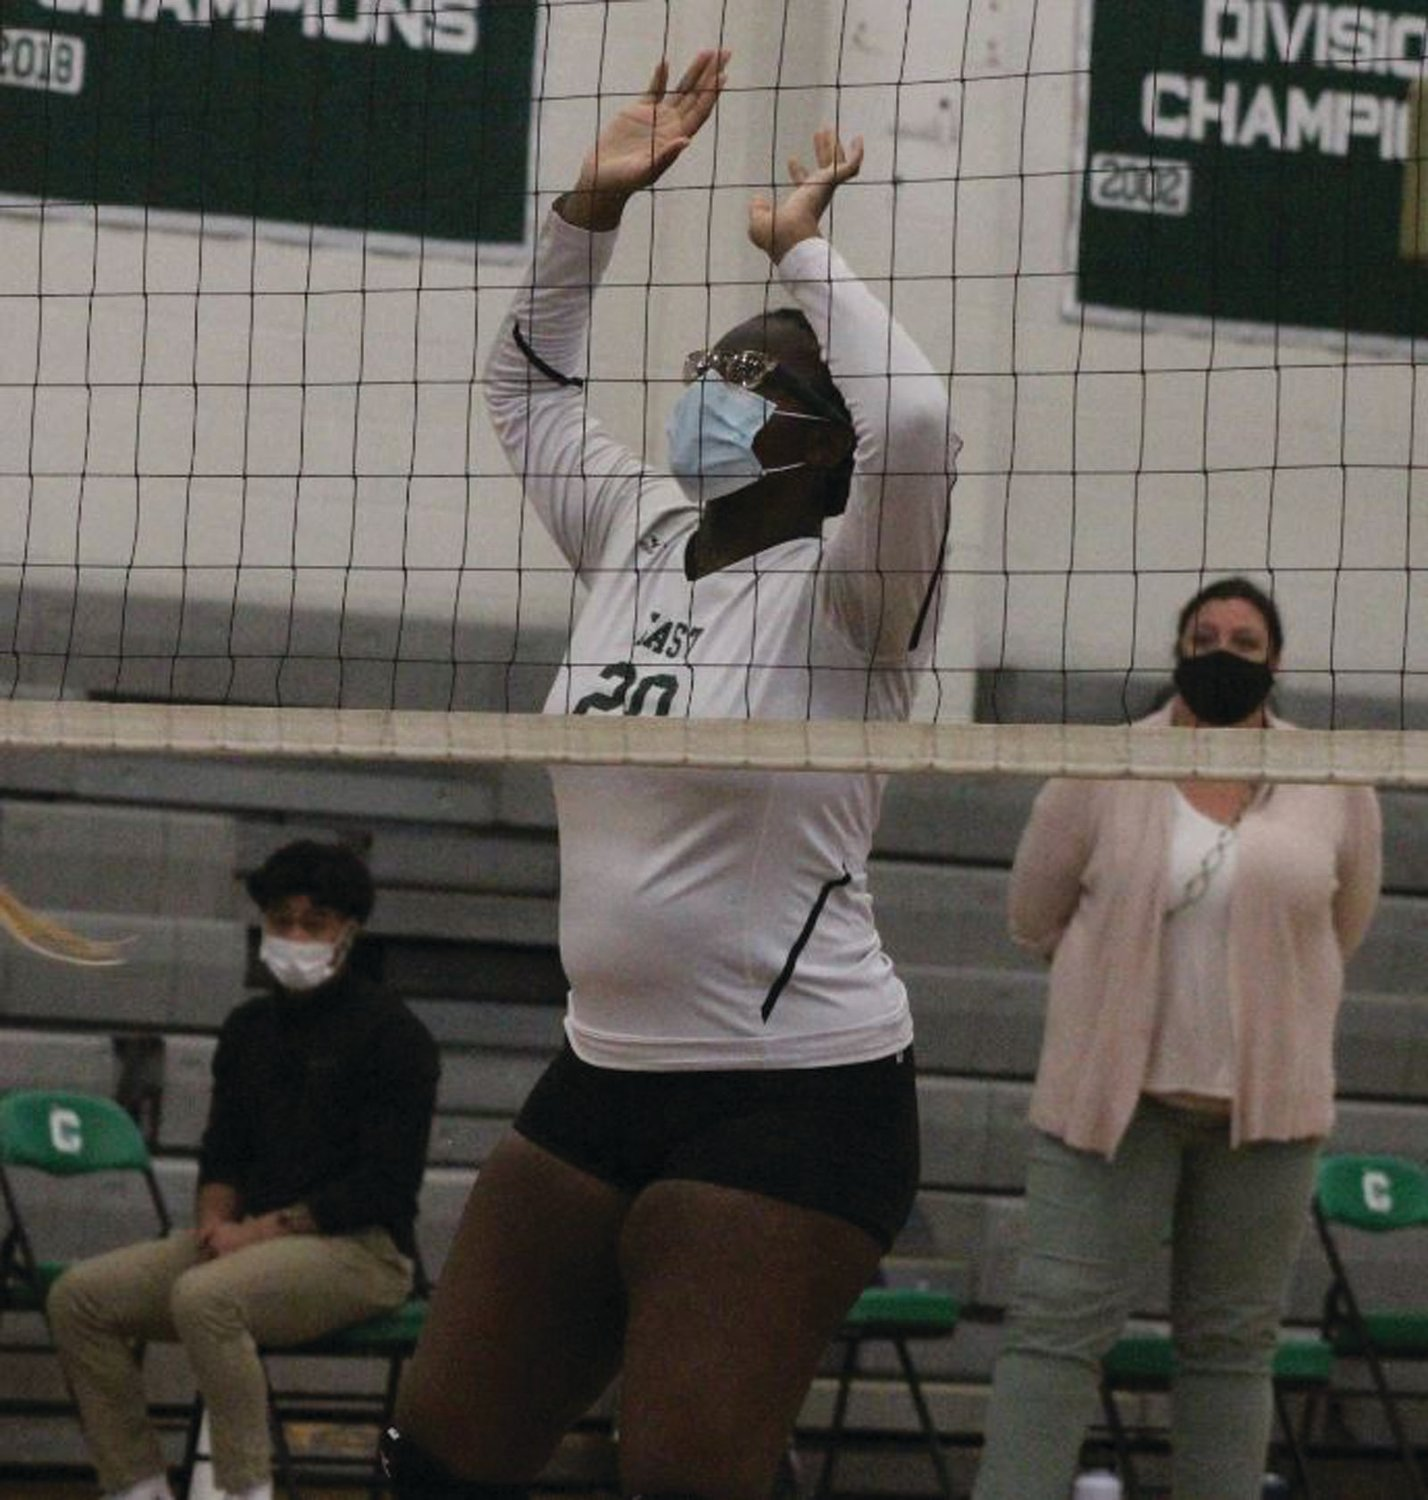 AT THE NET: Cranston East's Samantha Sainristil.